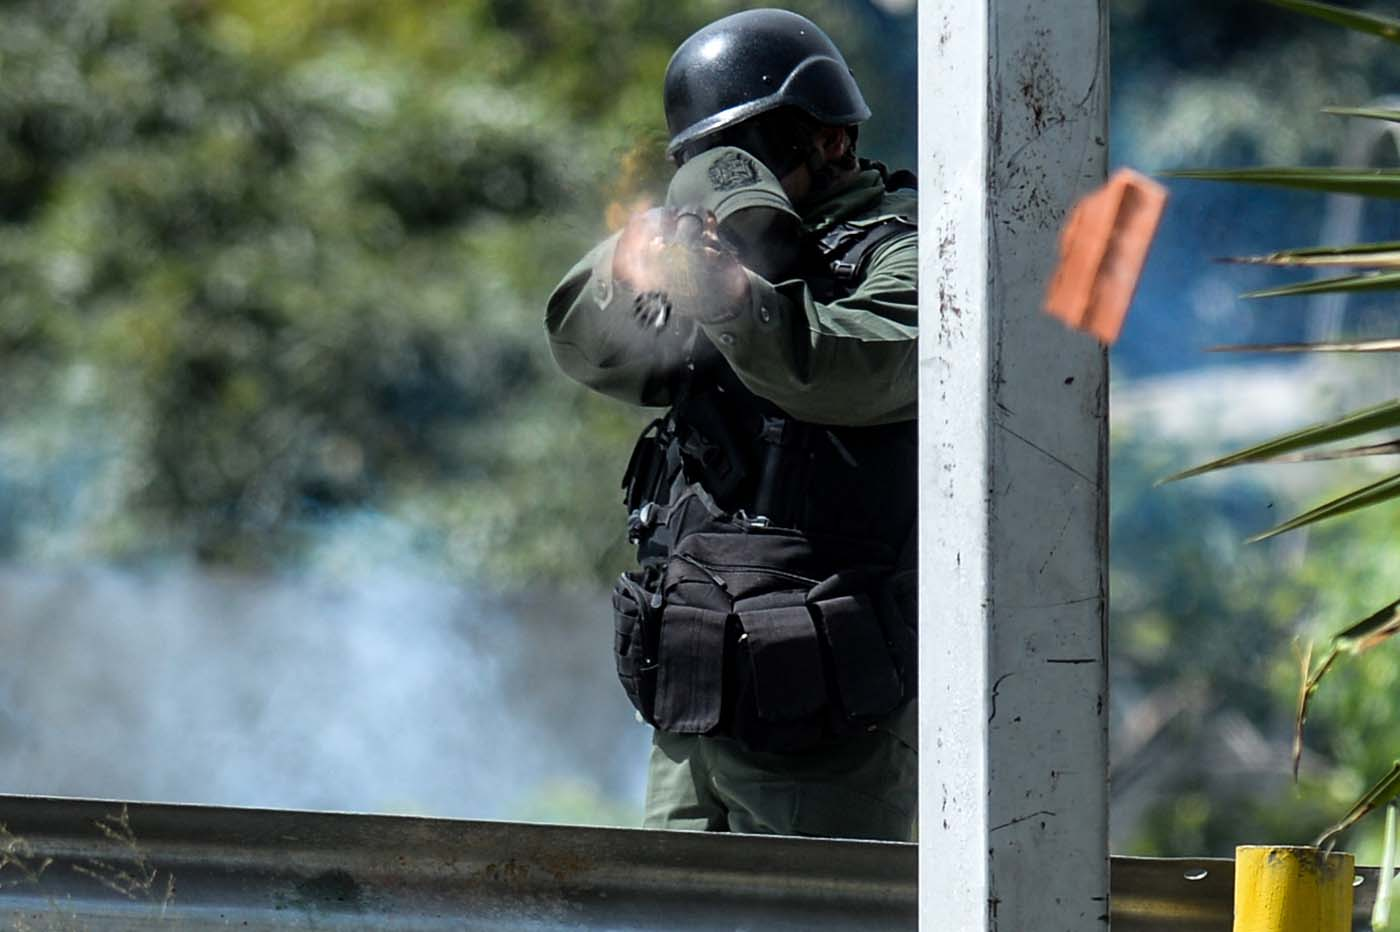 A riot policeman confronts opposition activists during a demostration against Venezuelan President Nicolas Maduro in Caracas, on May 26, 2017. Both the Venezuelan government and the opposition admit that violent protests that have gripped the country for nearly two months are out of control -- and analysts warn they could be a double-edged sword that might trigger even more unrest. / AFP PHOTO / FEDERICO PARRA